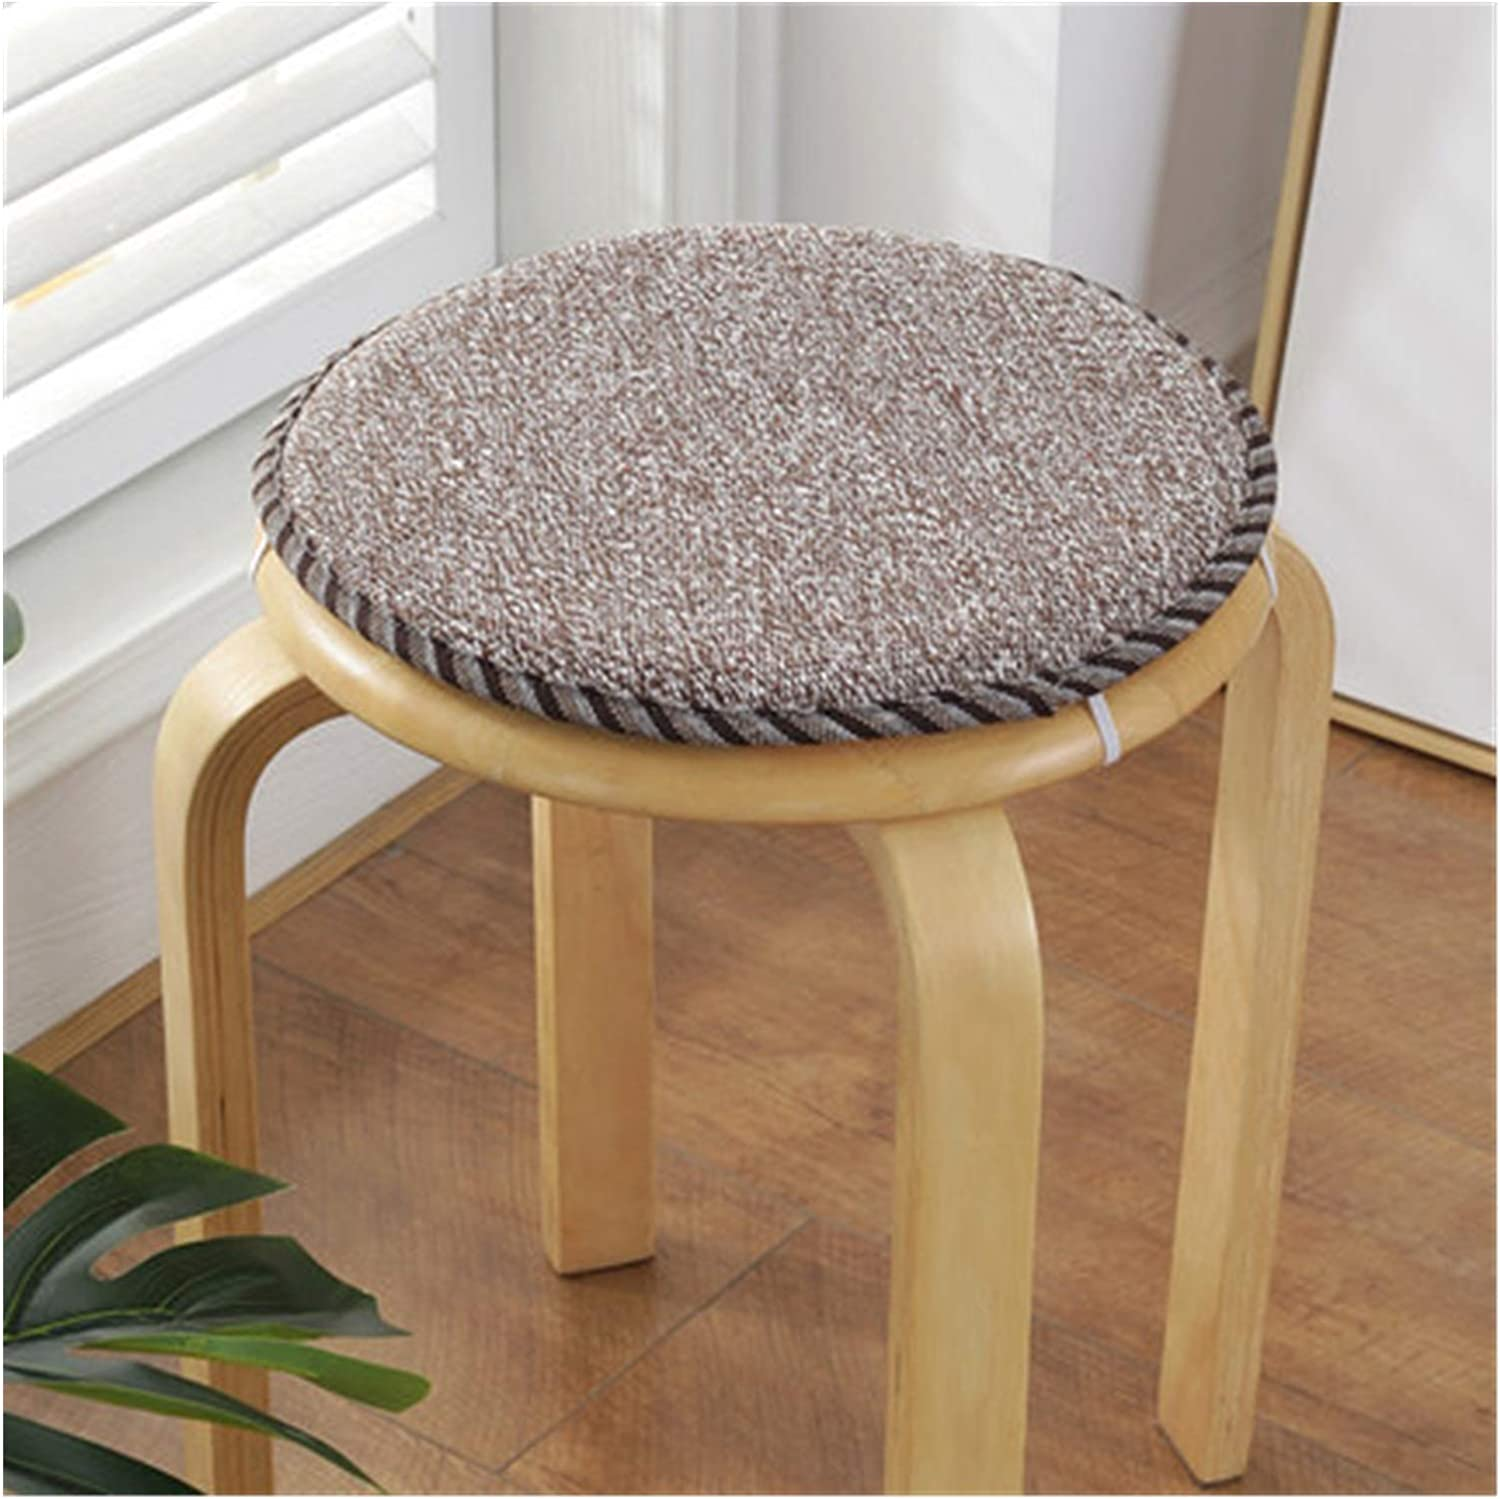 ZCPCS Outlet sale feature Winter Round Chair Cushion Seat Ho Soft Foam Sale Special Price Super